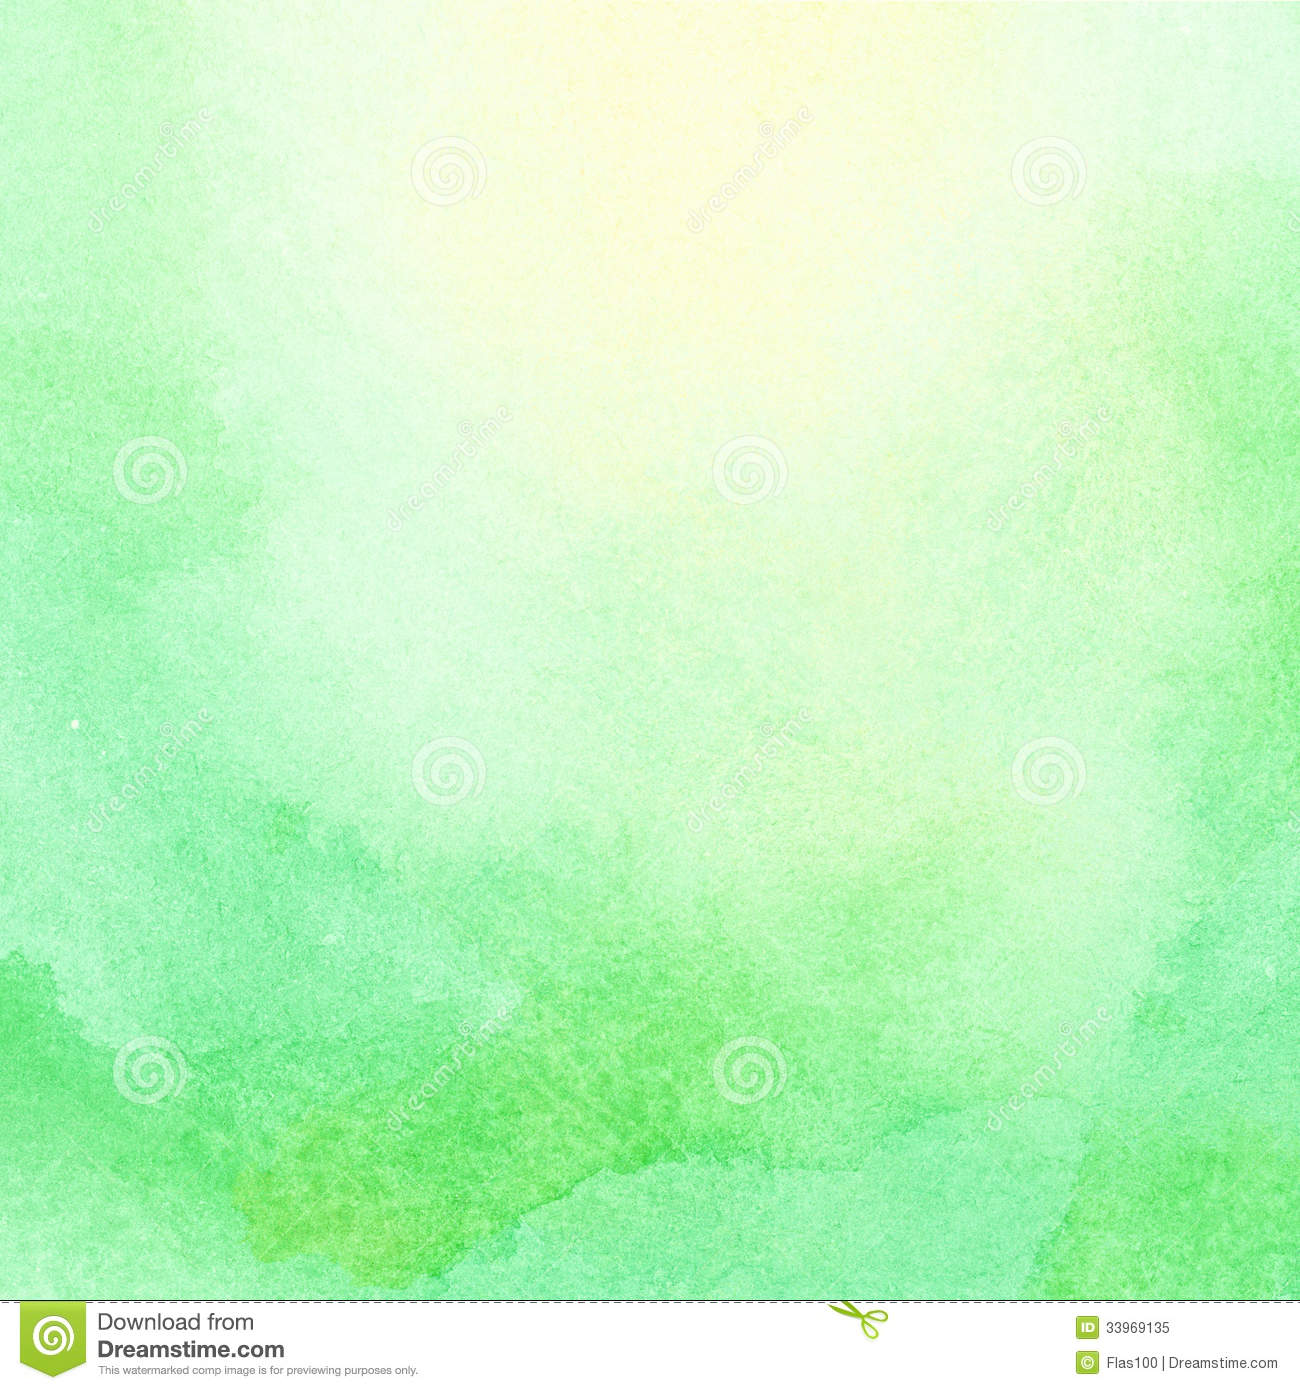 Abstract watercolor sun and sunlight shining on green Light pastel green paint